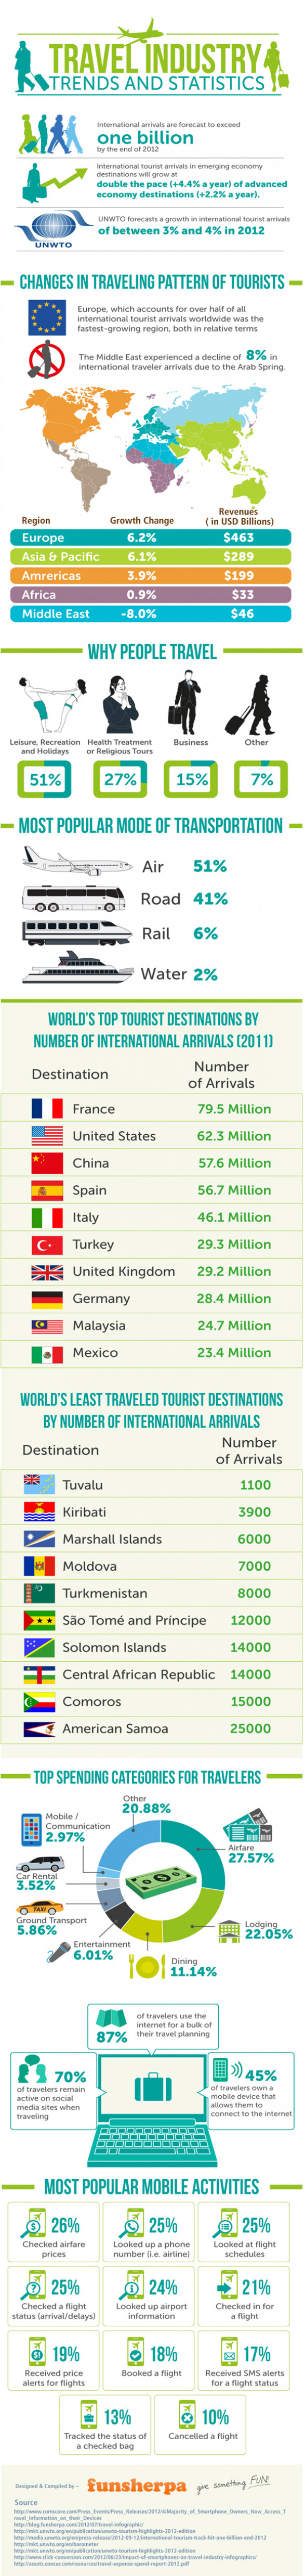 Travel Industry Trends 2012